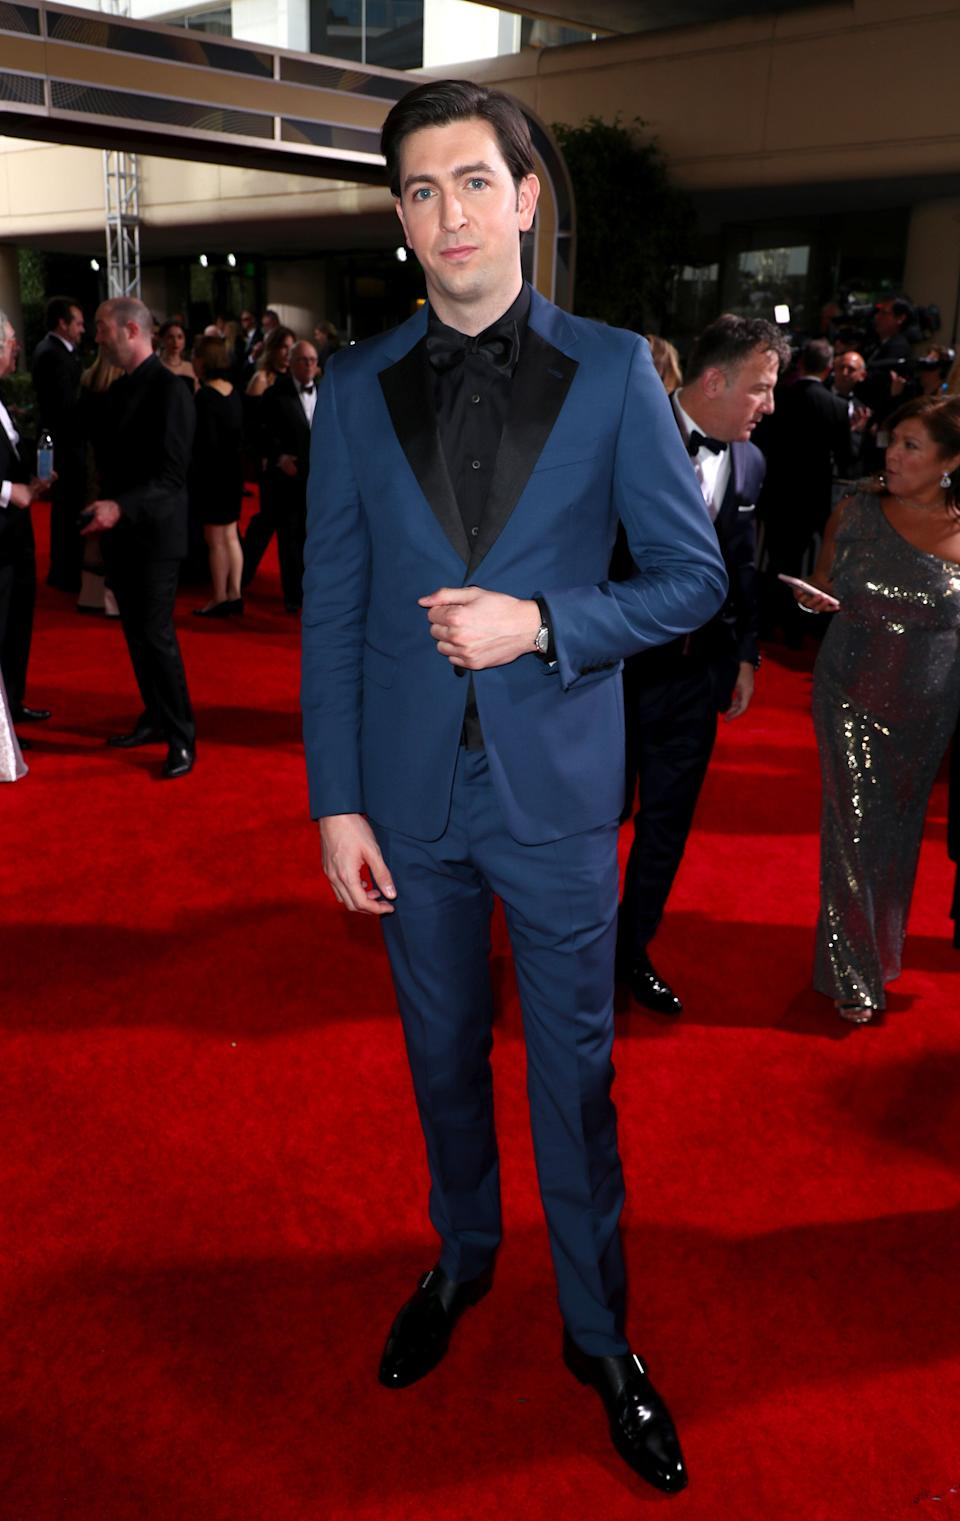 """Cousin Greg of """"Succession,"""" coming to rescue the red carpet from boring suits!"""